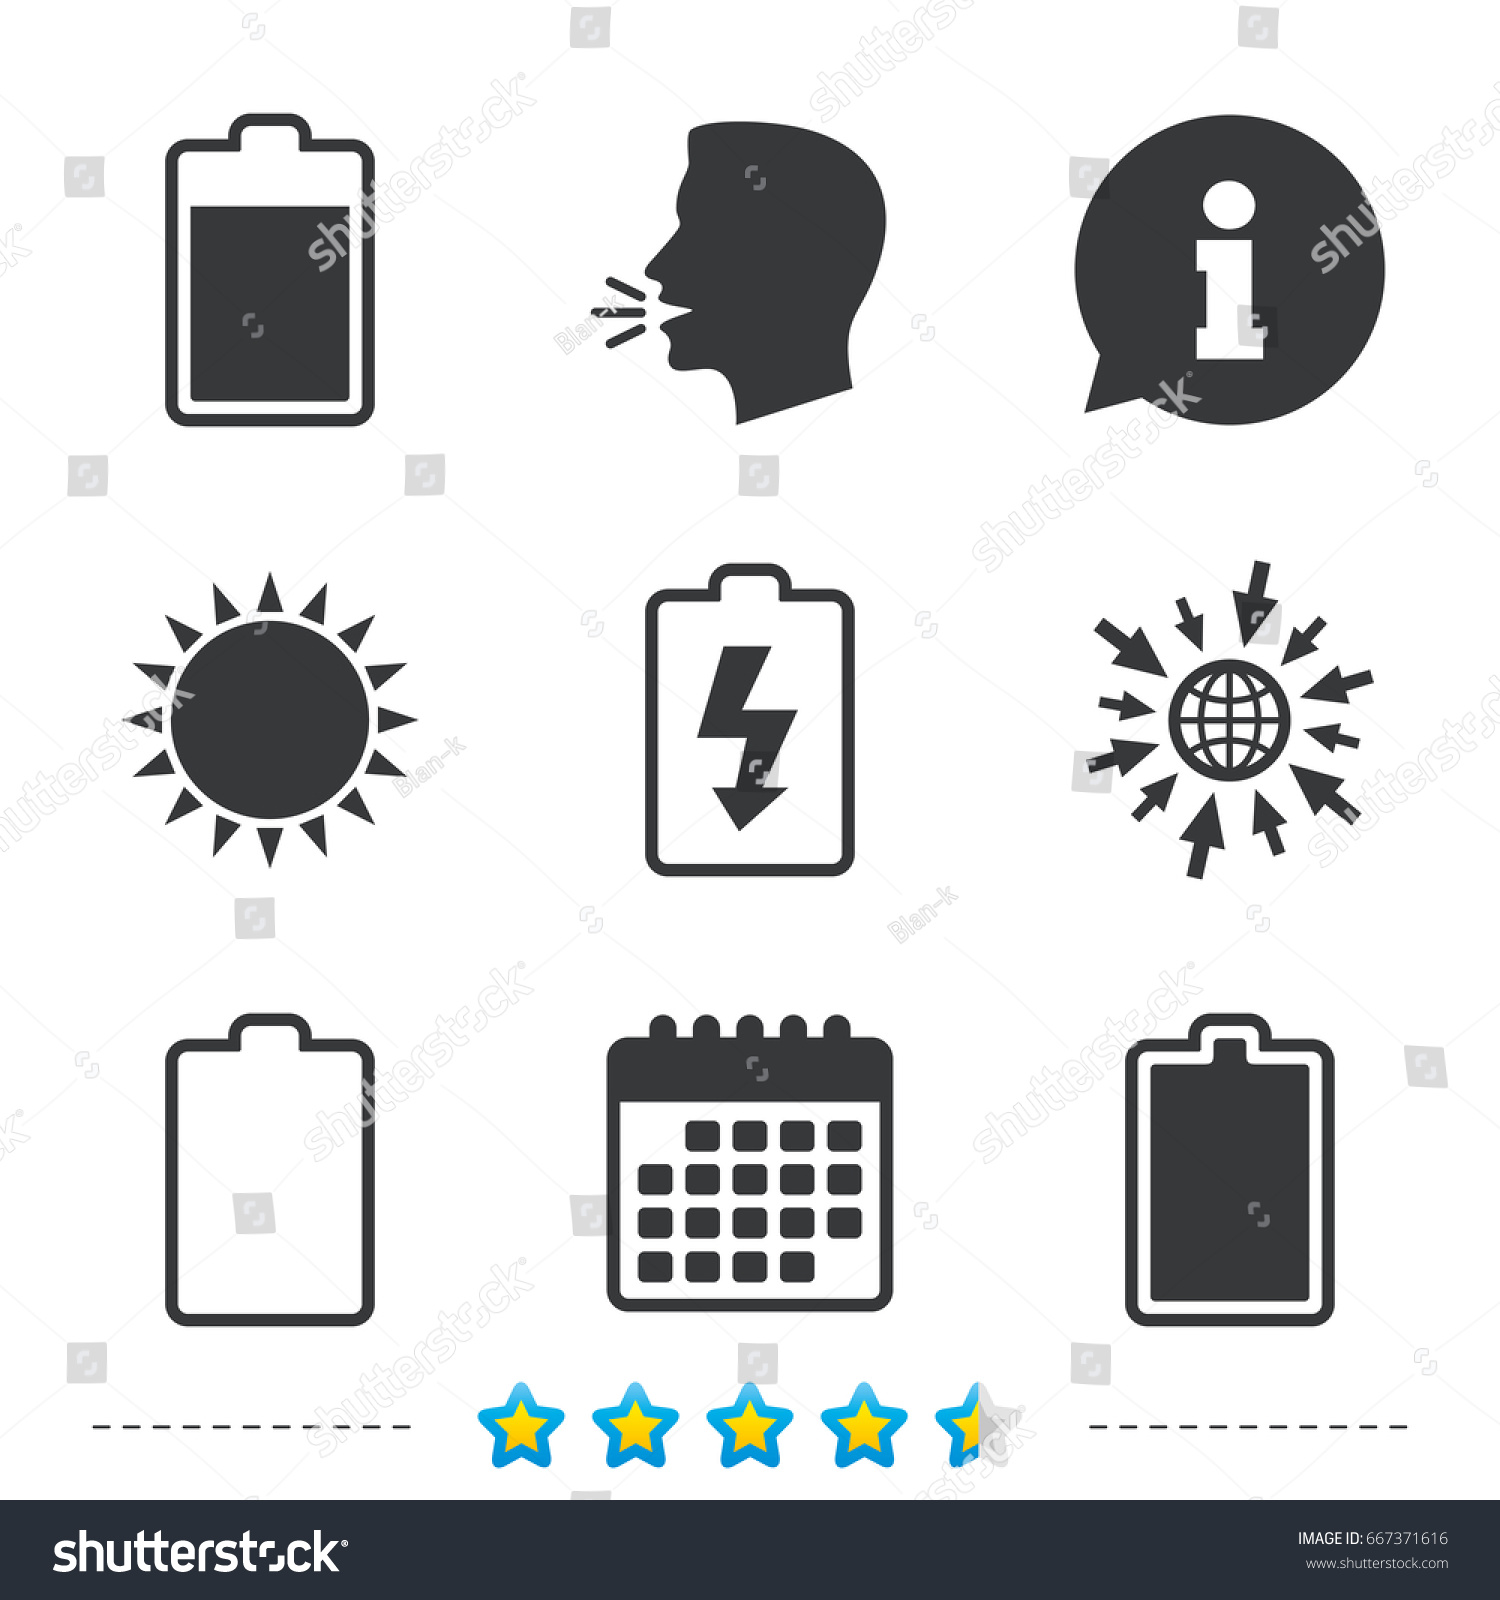 Dorable Electricity Signs Symbols Image - Electrical System Block ...